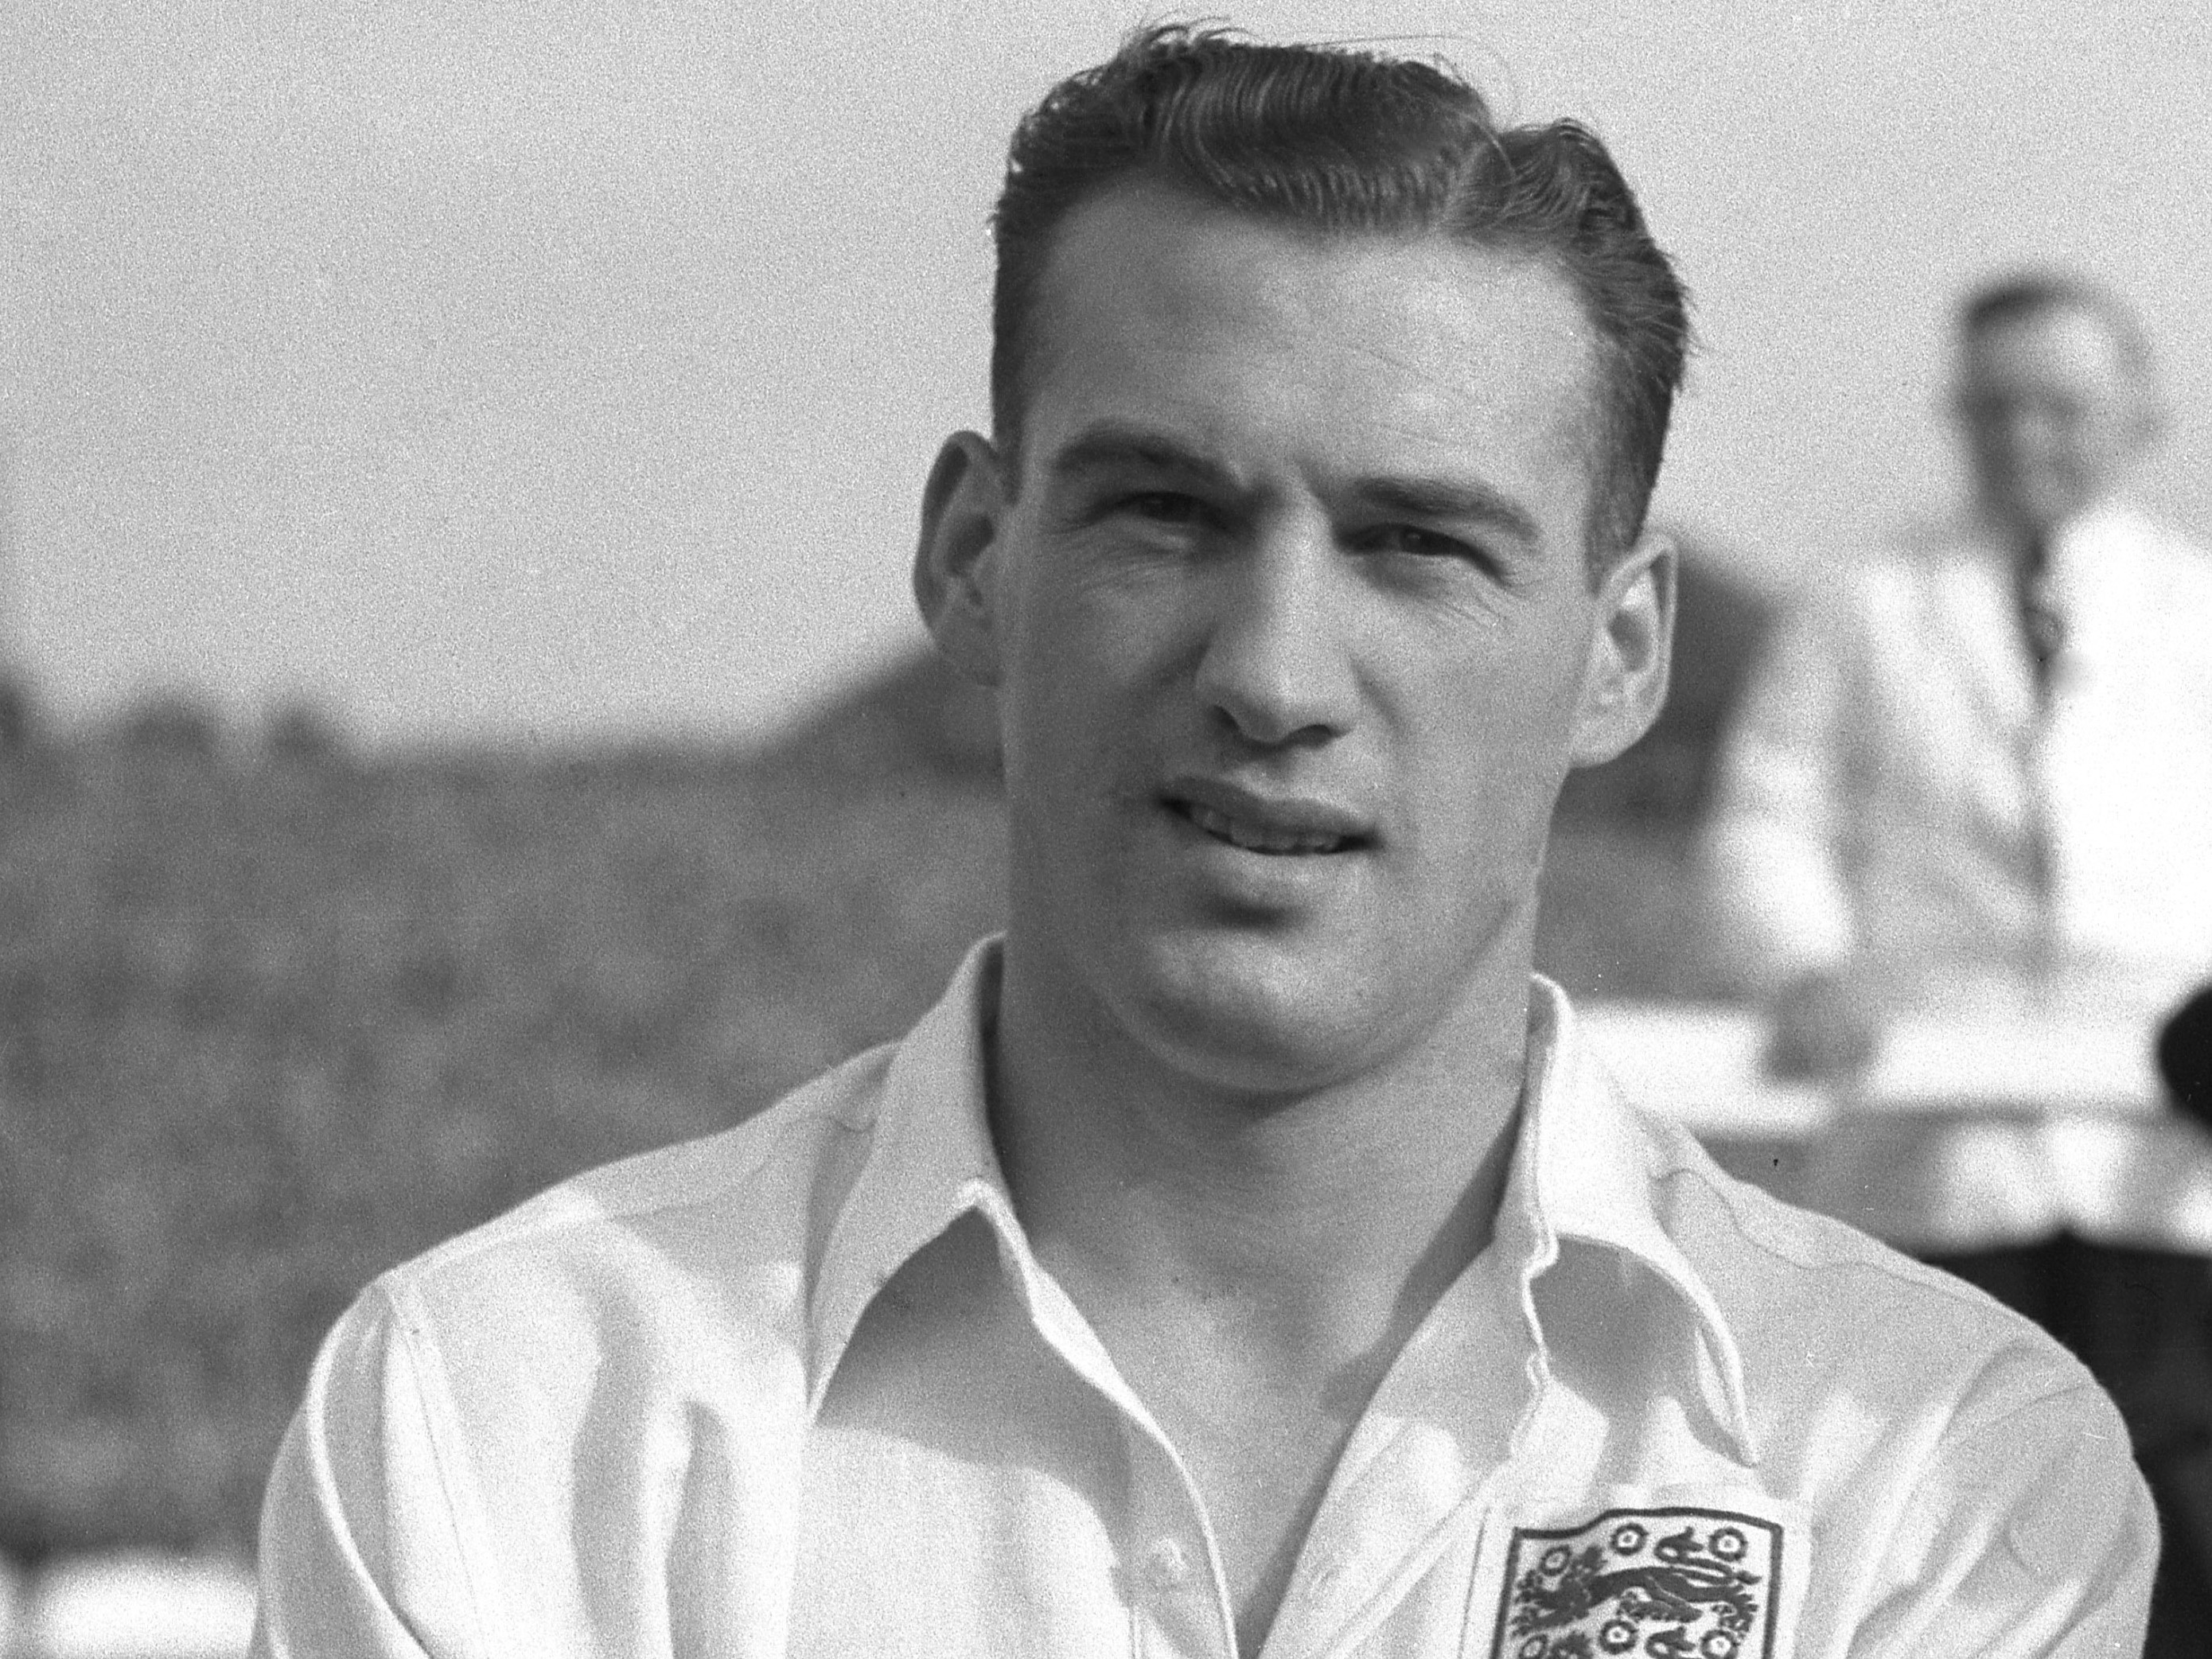 Nat Lofthouse scored two of his 30 England goals in the World Cup draw with Belgium.